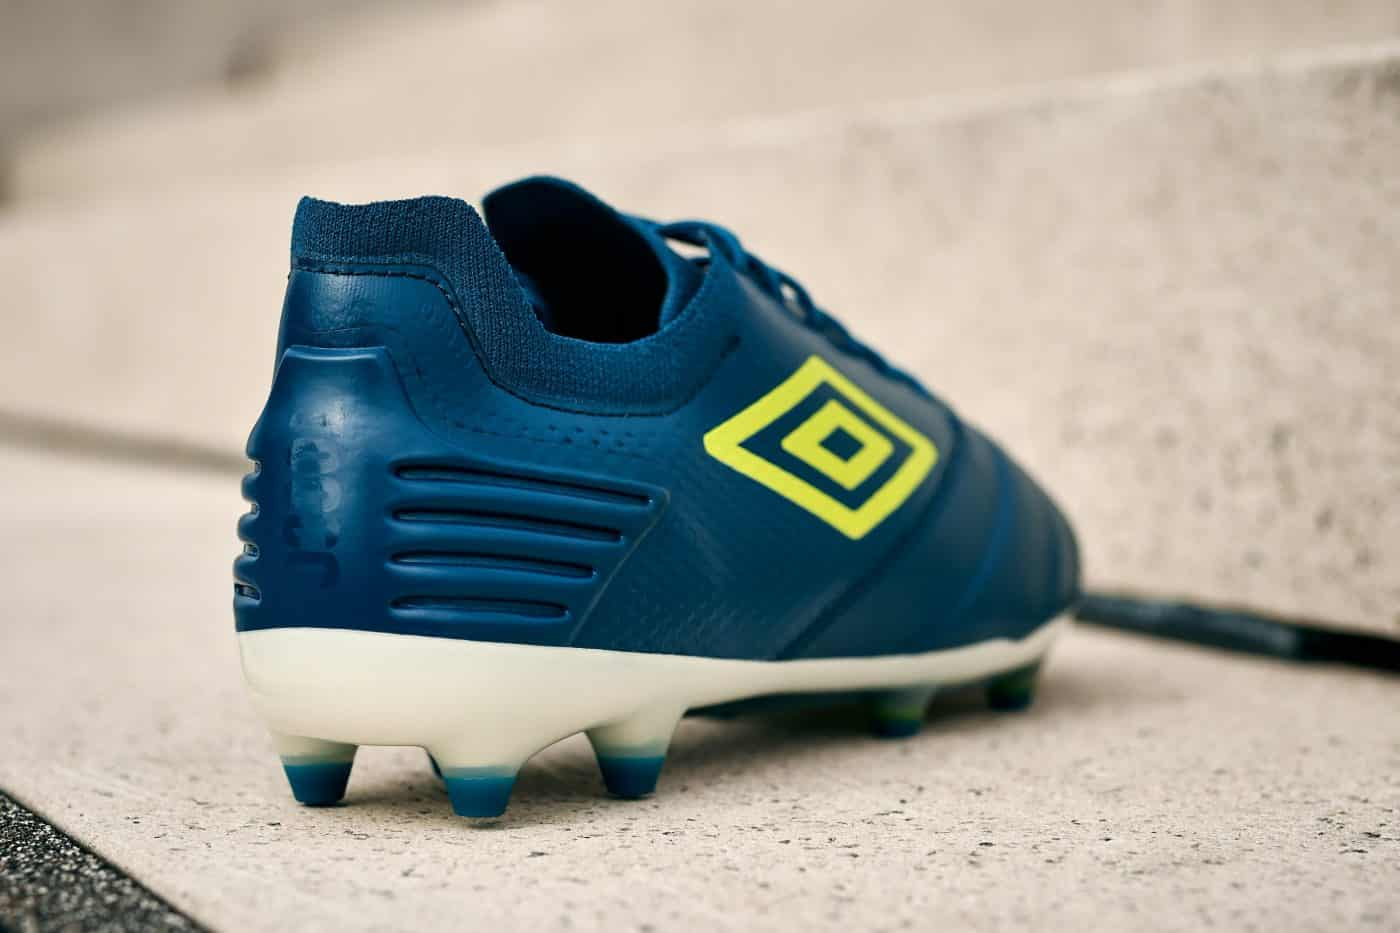 umbro-tocco-the-deadly-duo-3